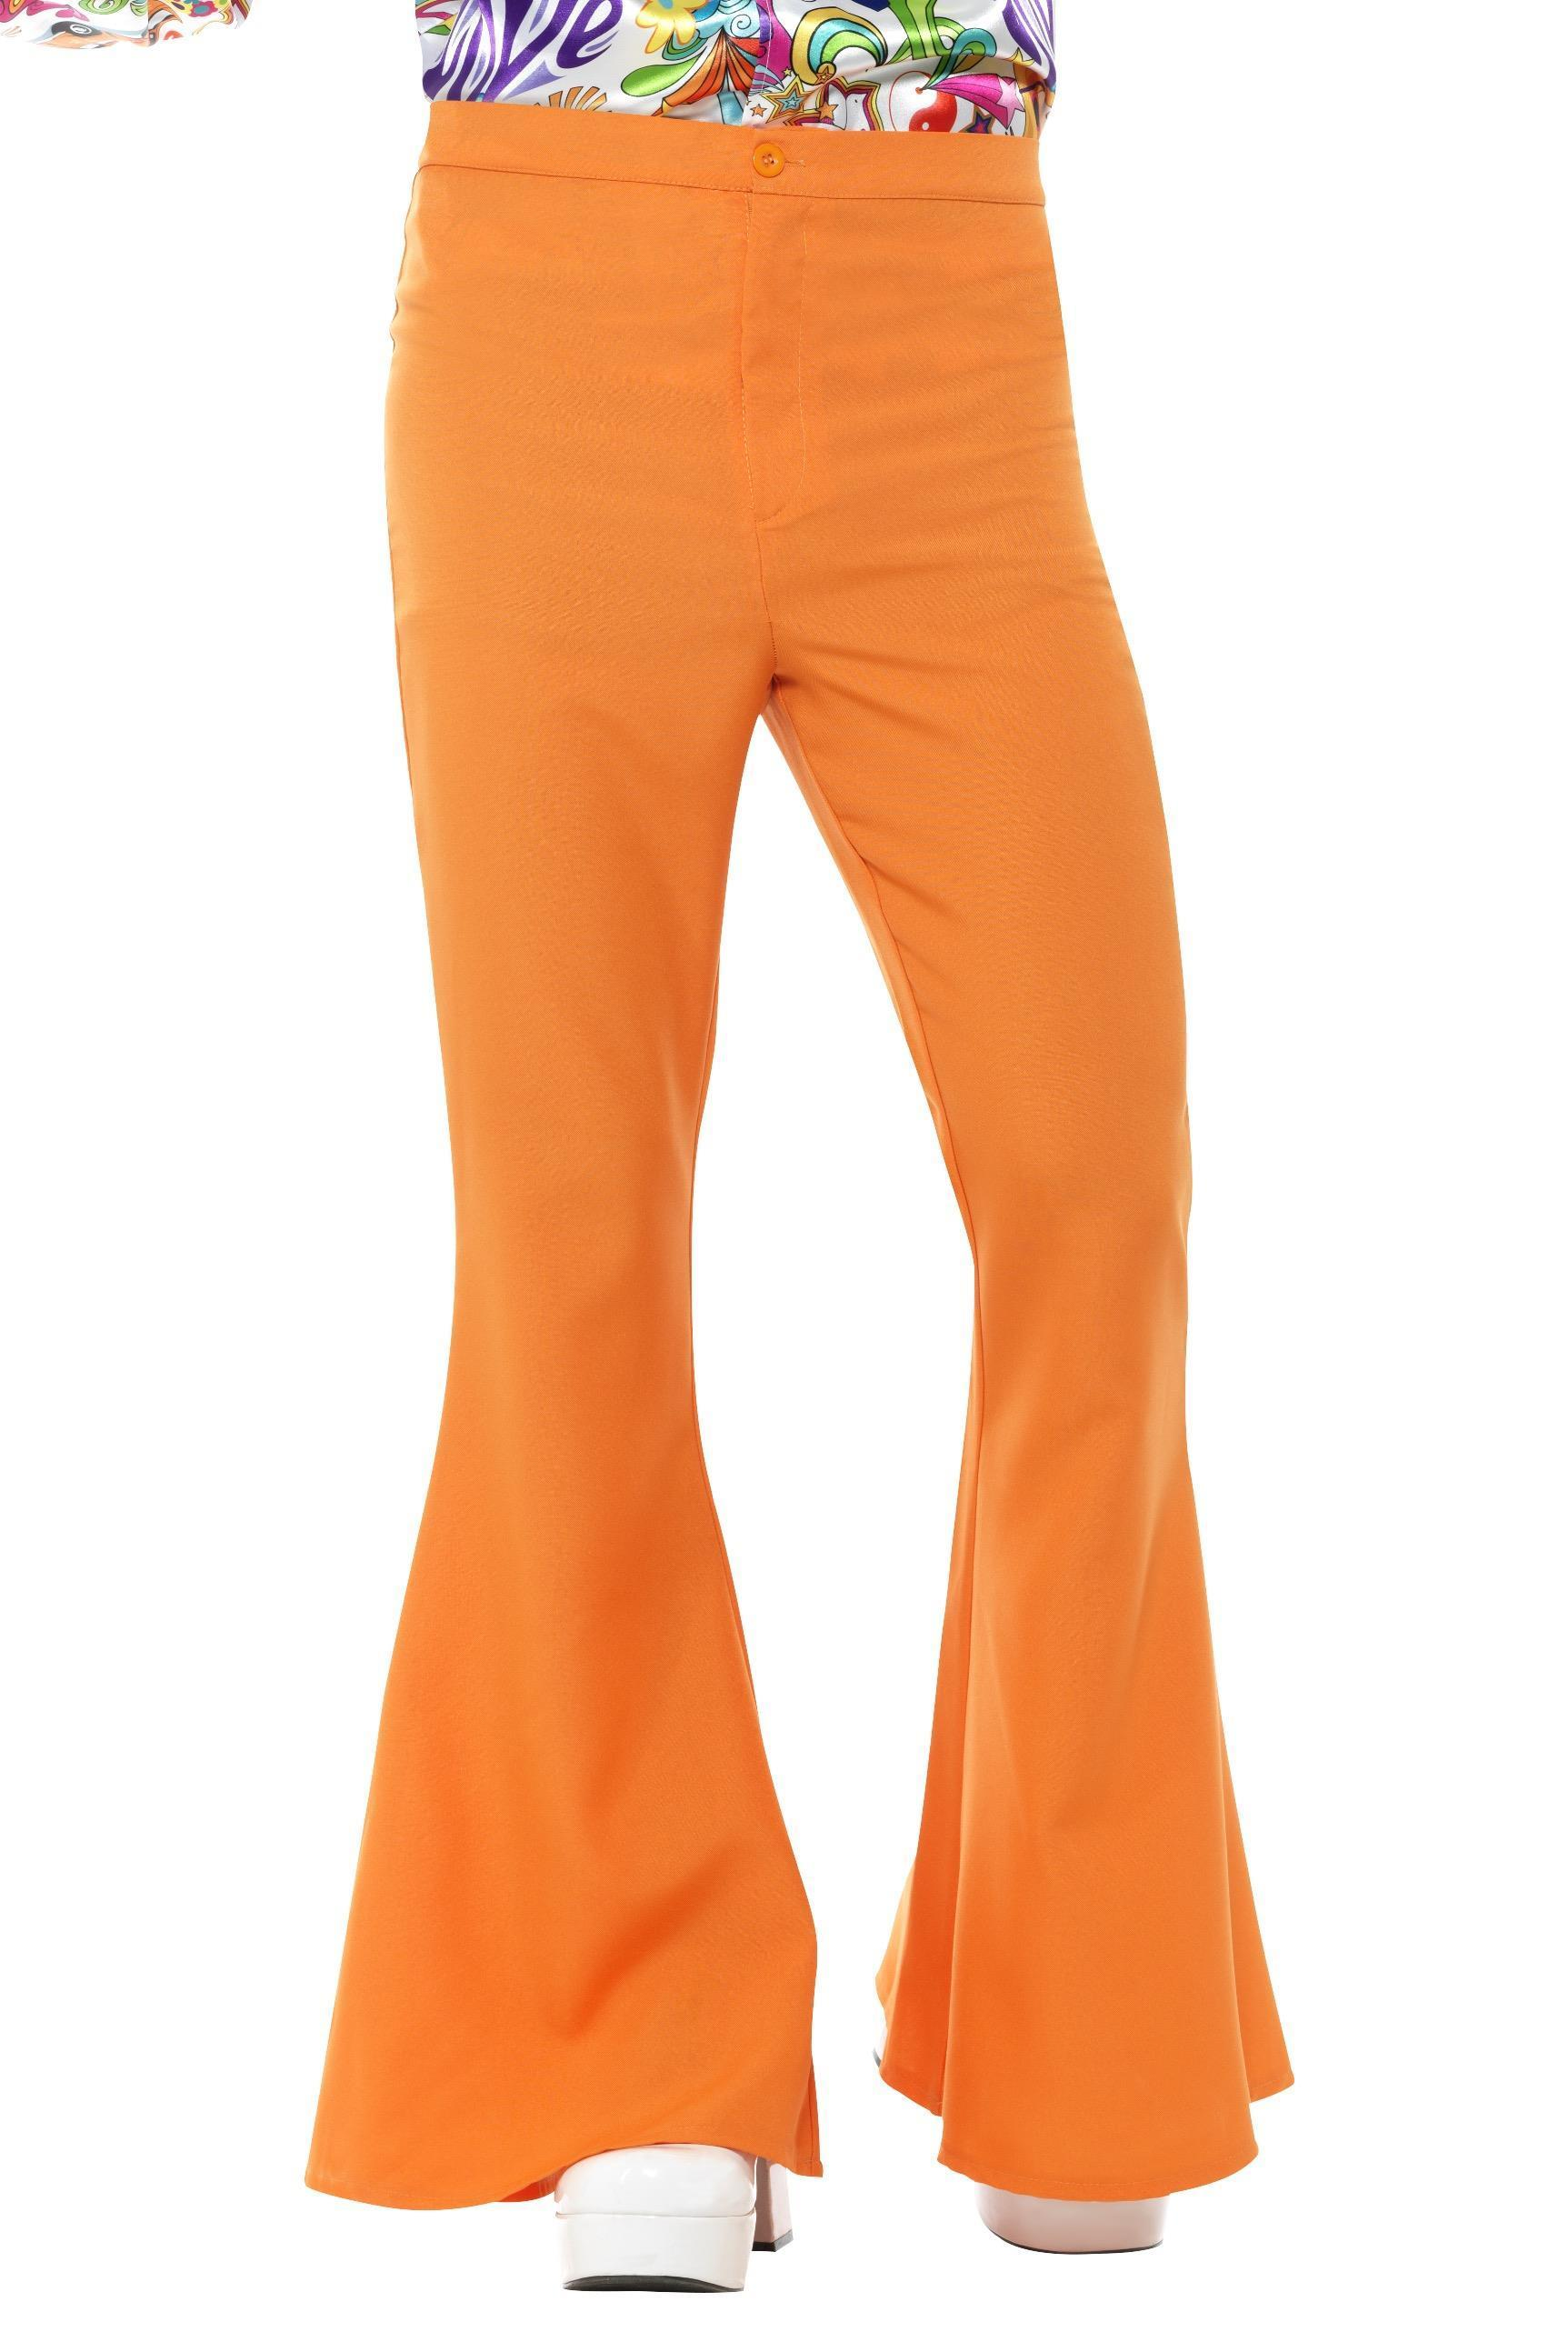 Mens Flared Trousers Orange